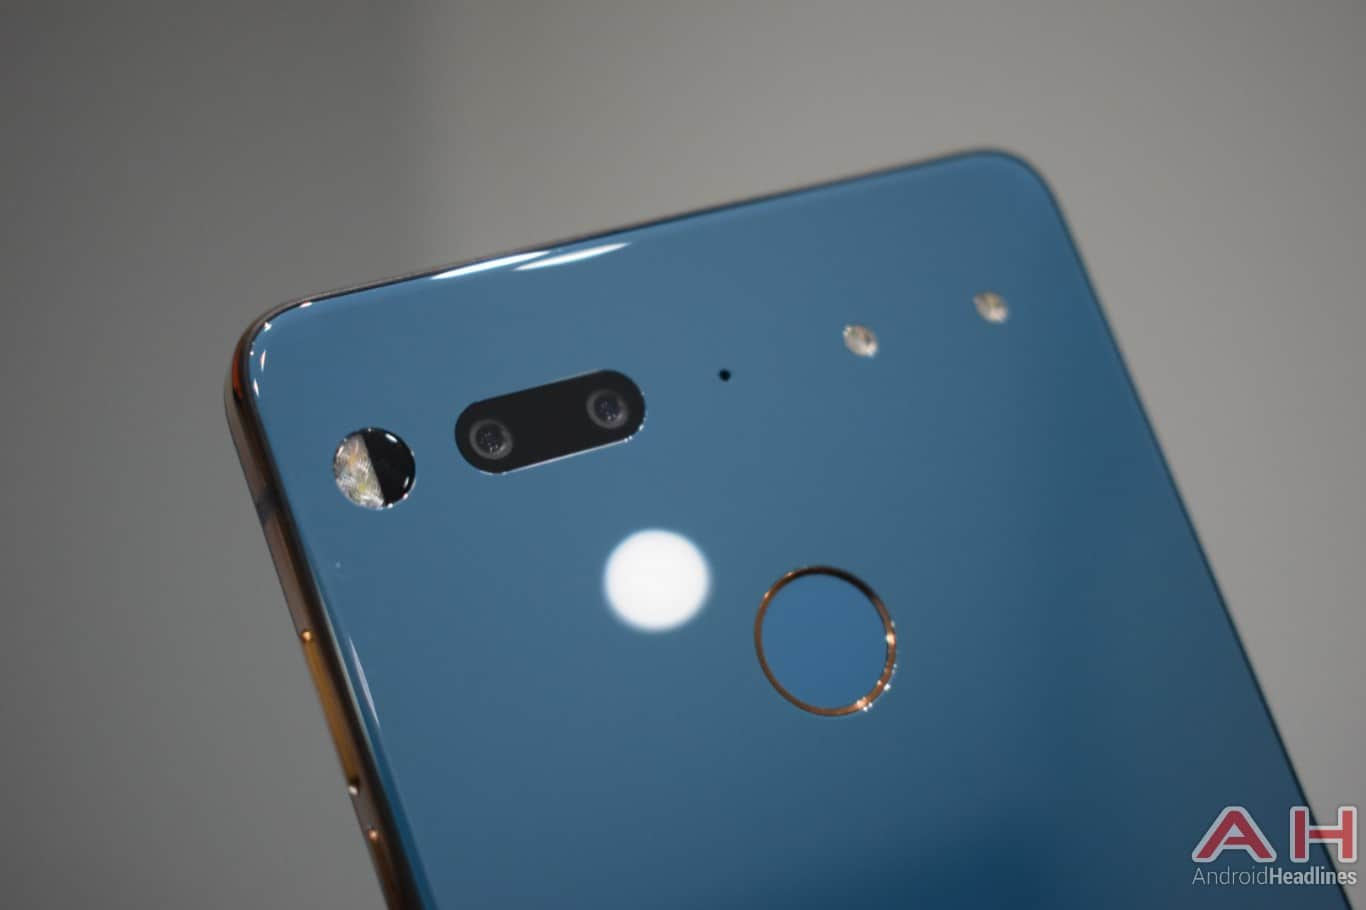 AH Essential PH 1 hands on MWC 2018 12